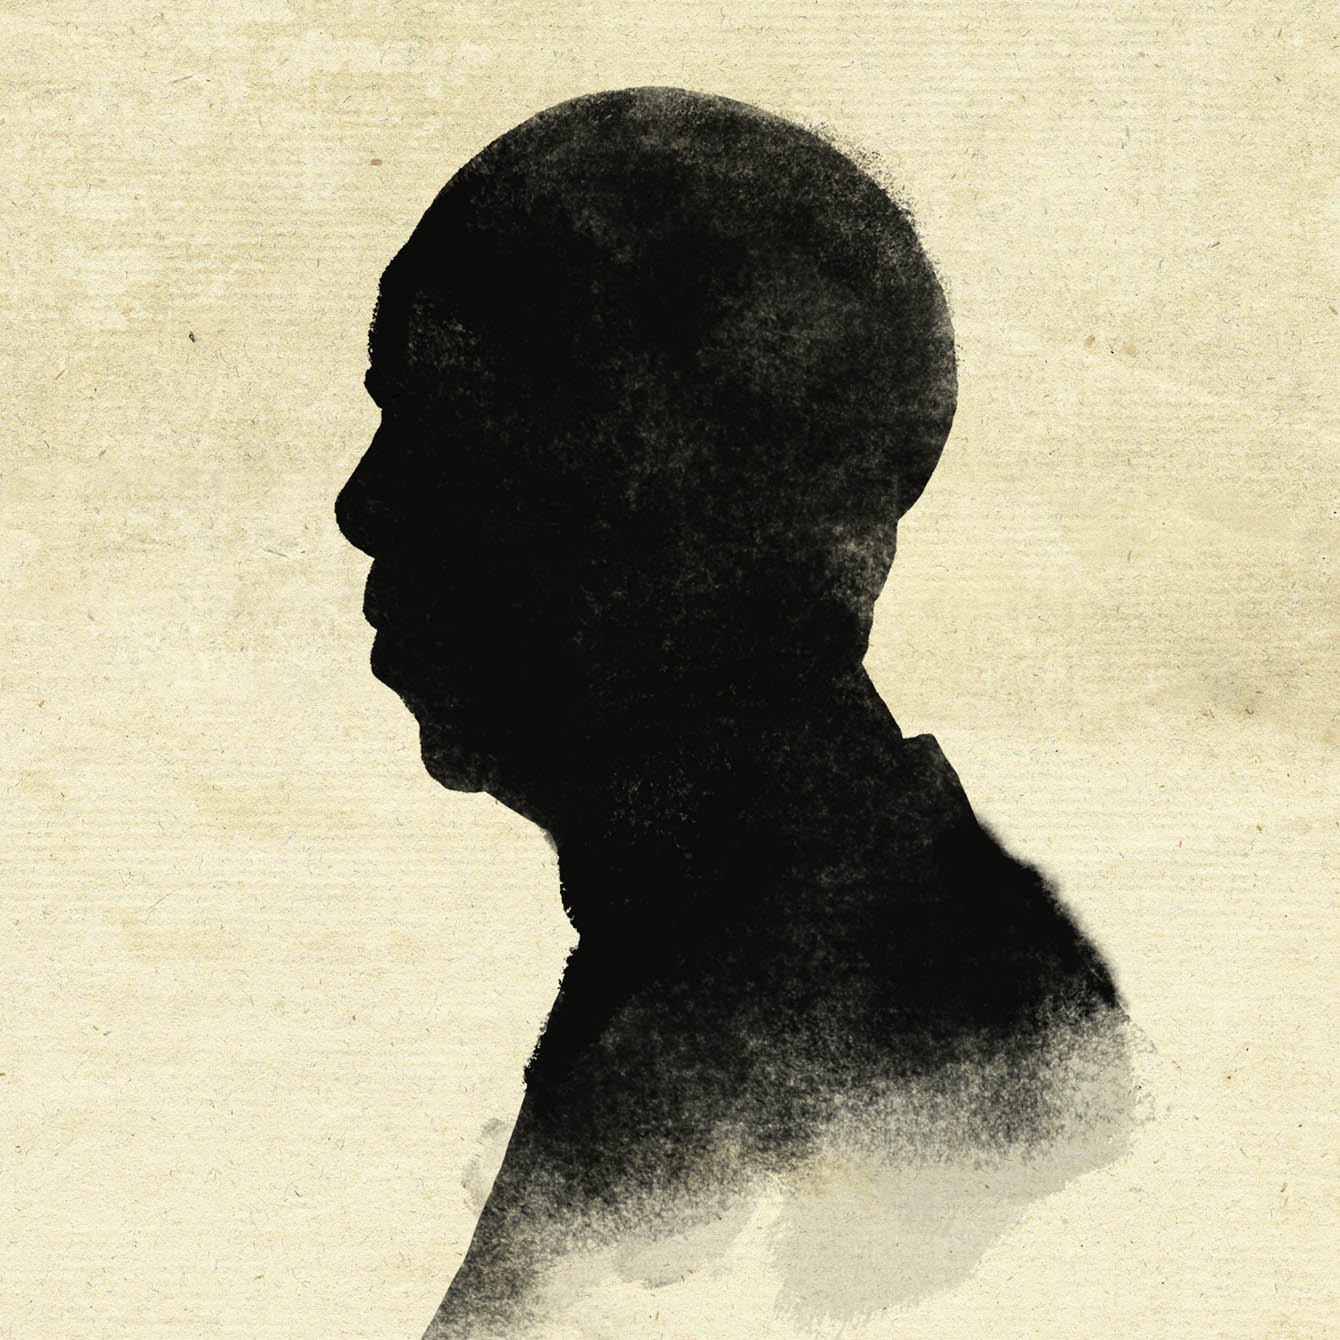 Silhouette of an Elderly Man